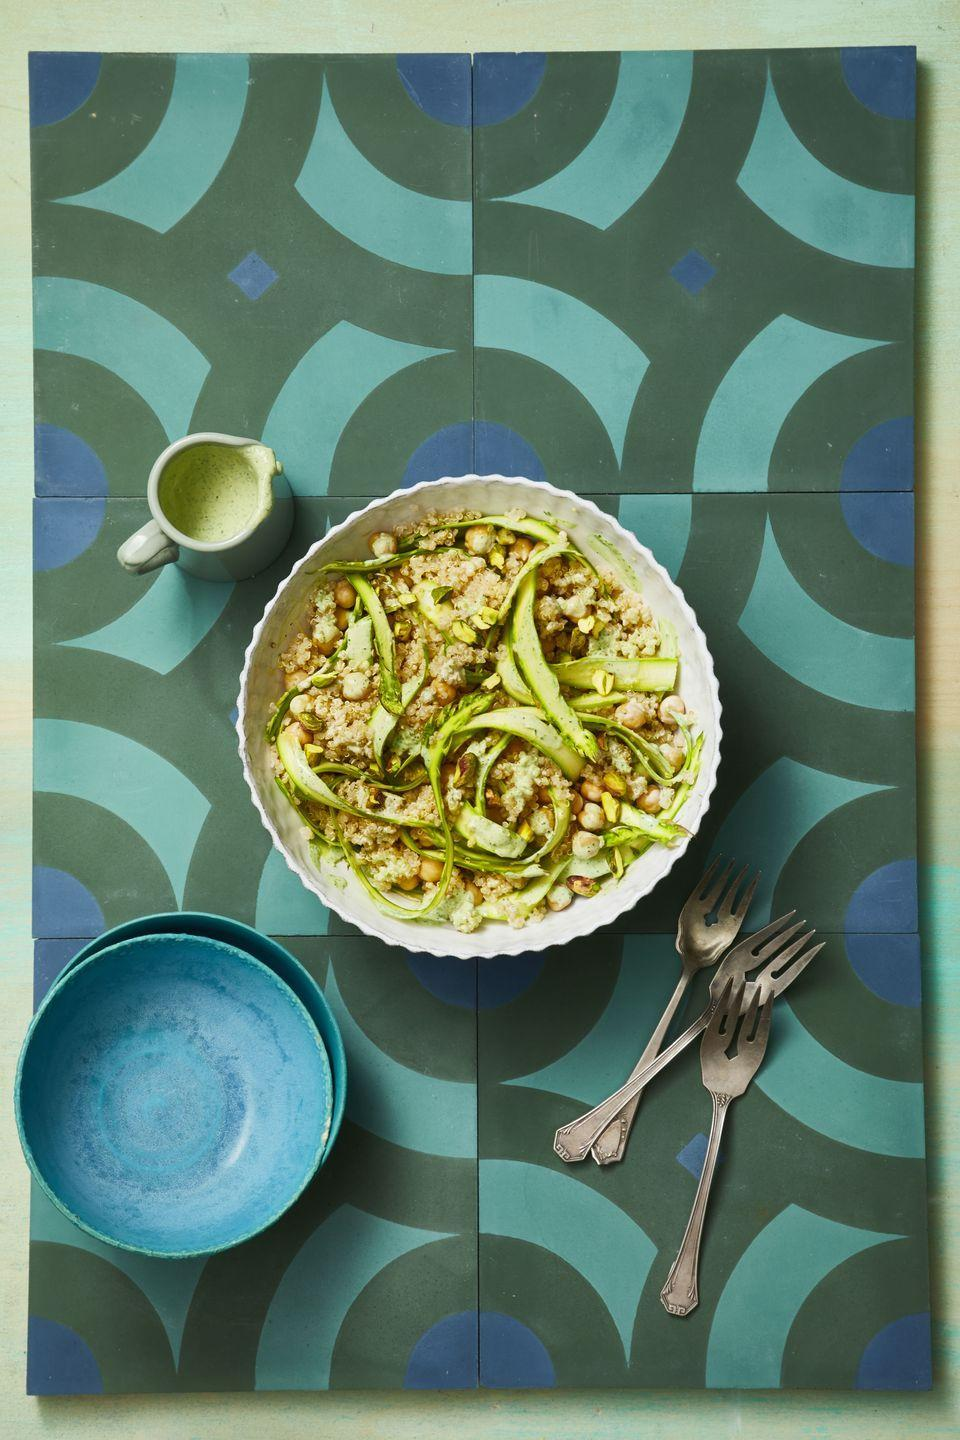 """<p>Shaved asparagus ribbons make this simple quinoa and chickpea salad more special. Plus, the hearty vegetable can stand up to creamy tahini dressing.</p><p><em><a href=""""https://www.goodhousekeeping.com/food-recipes/healthy/a19866004/tahini-lemon-quinoa-with-asparagus-ribbons-recipe/"""" rel=""""nofollow noopener"""" target=""""_blank"""" data-ylk=""""slk:Get the recipe for Tahini-Lemon Quinoa with Asparagus Ribbons »"""" class=""""link rapid-noclick-resp"""">Get the recipe for Tahini-Lemon Quinoa with Asparagus Ribbons »</a></em></p>"""